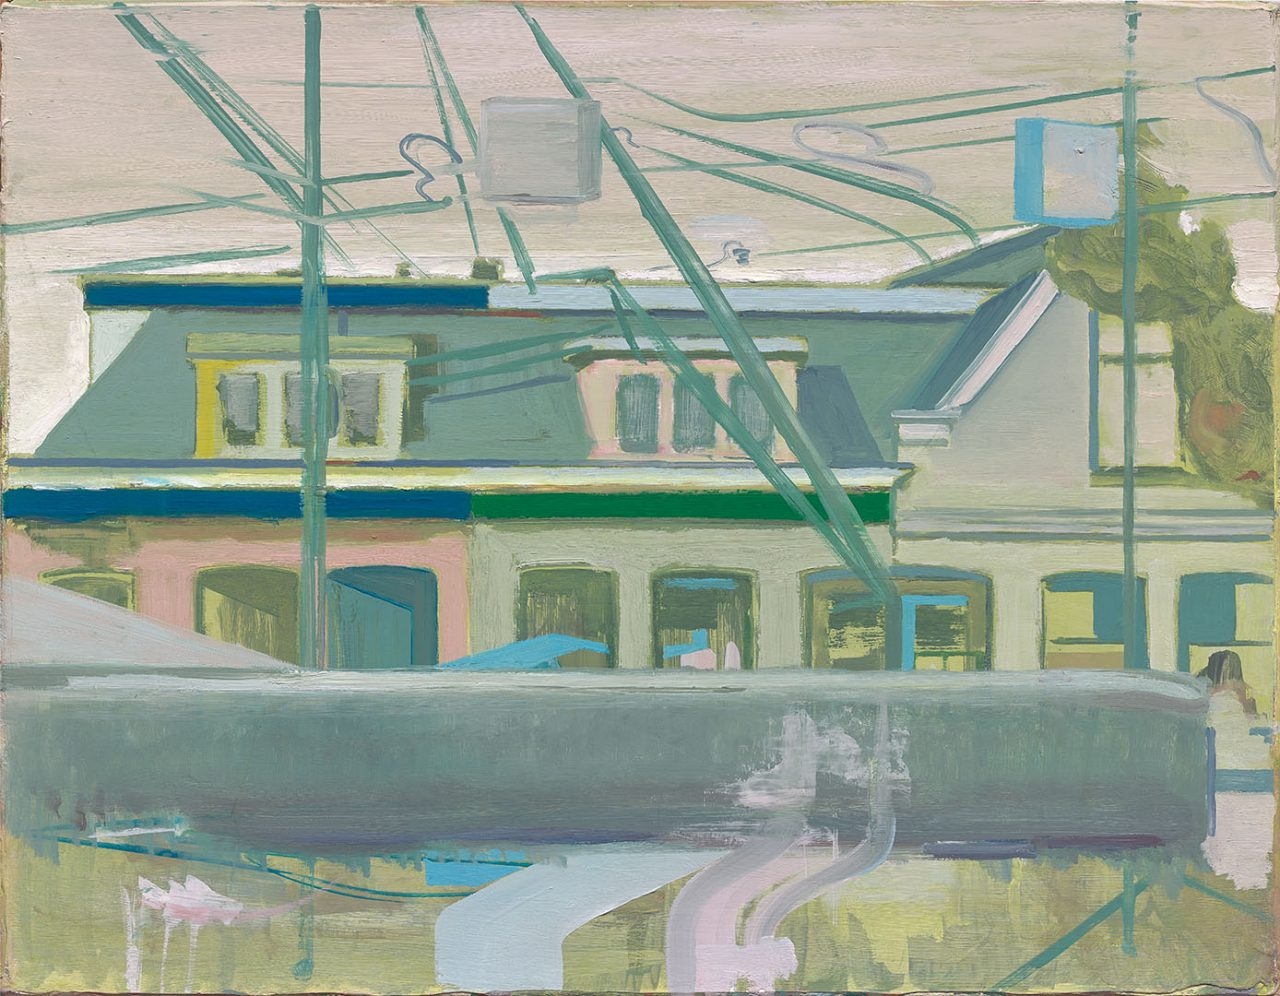 Dutch houses along the railroad tracks 2009, Size: 35 x 44 cm.